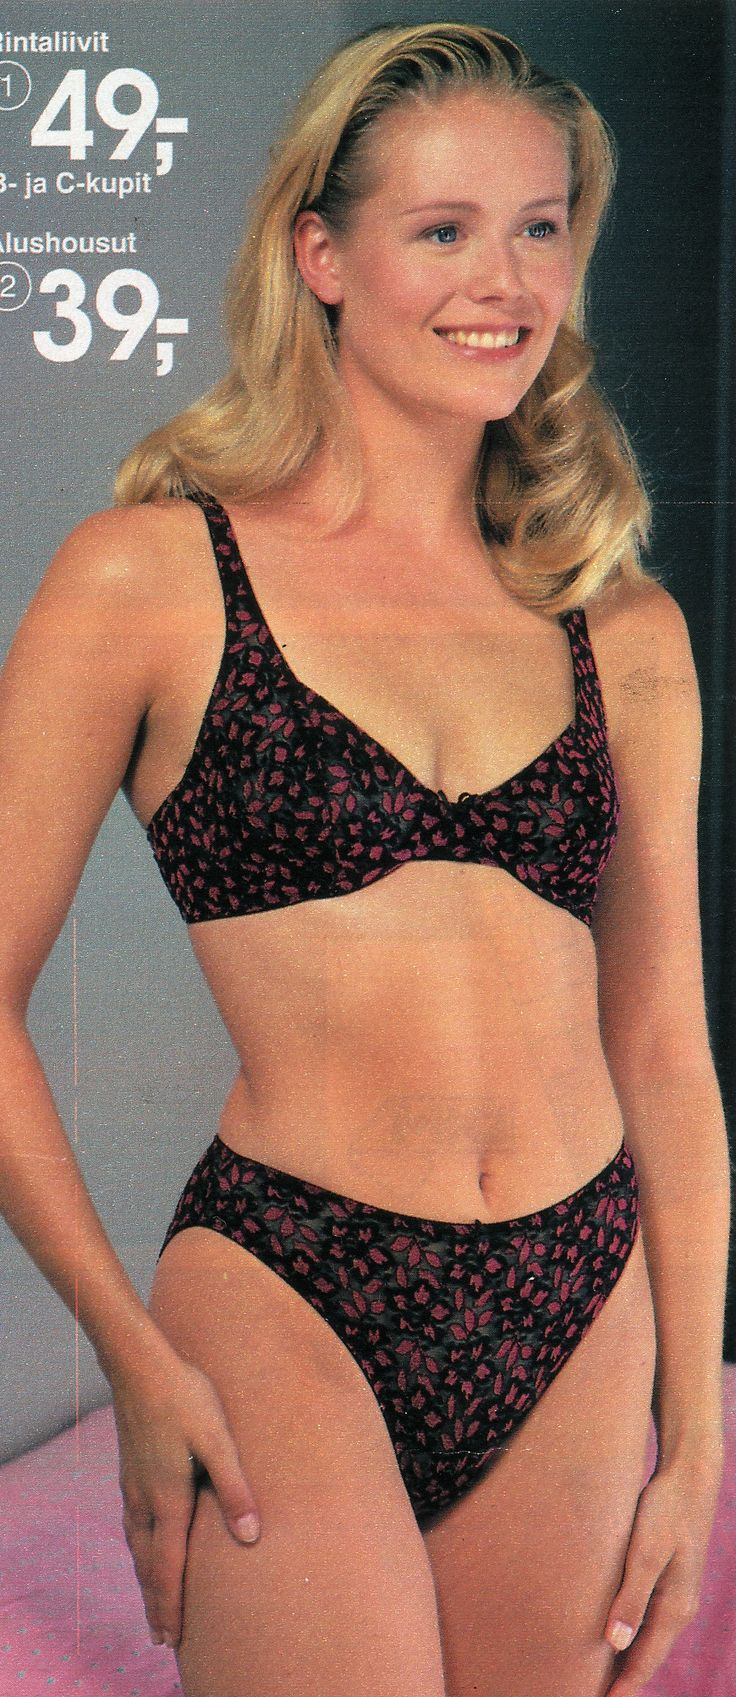 Pin On Lingerie Classics Scandinavian Edition